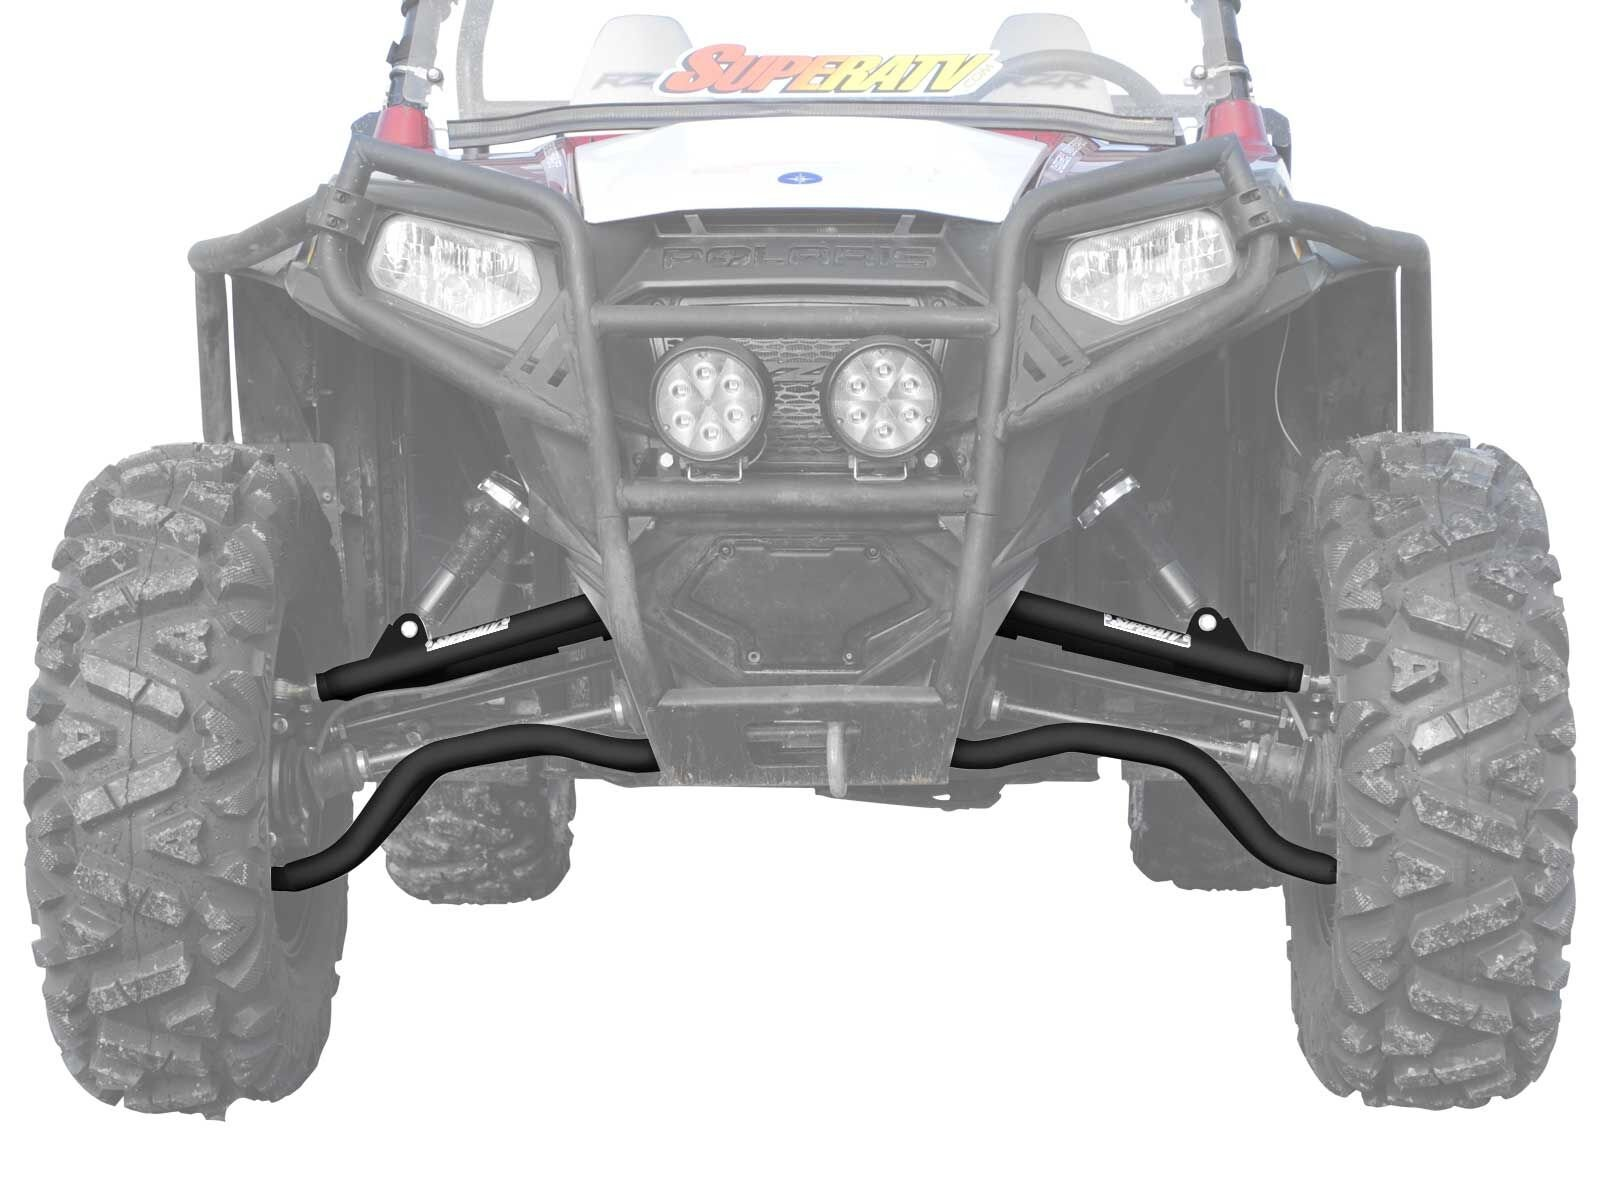 SuperATV Polaris RZR 800 4 / 800 S High Clearance Front A-Arms (2009-2014) - 0'' Forward Offset - Black